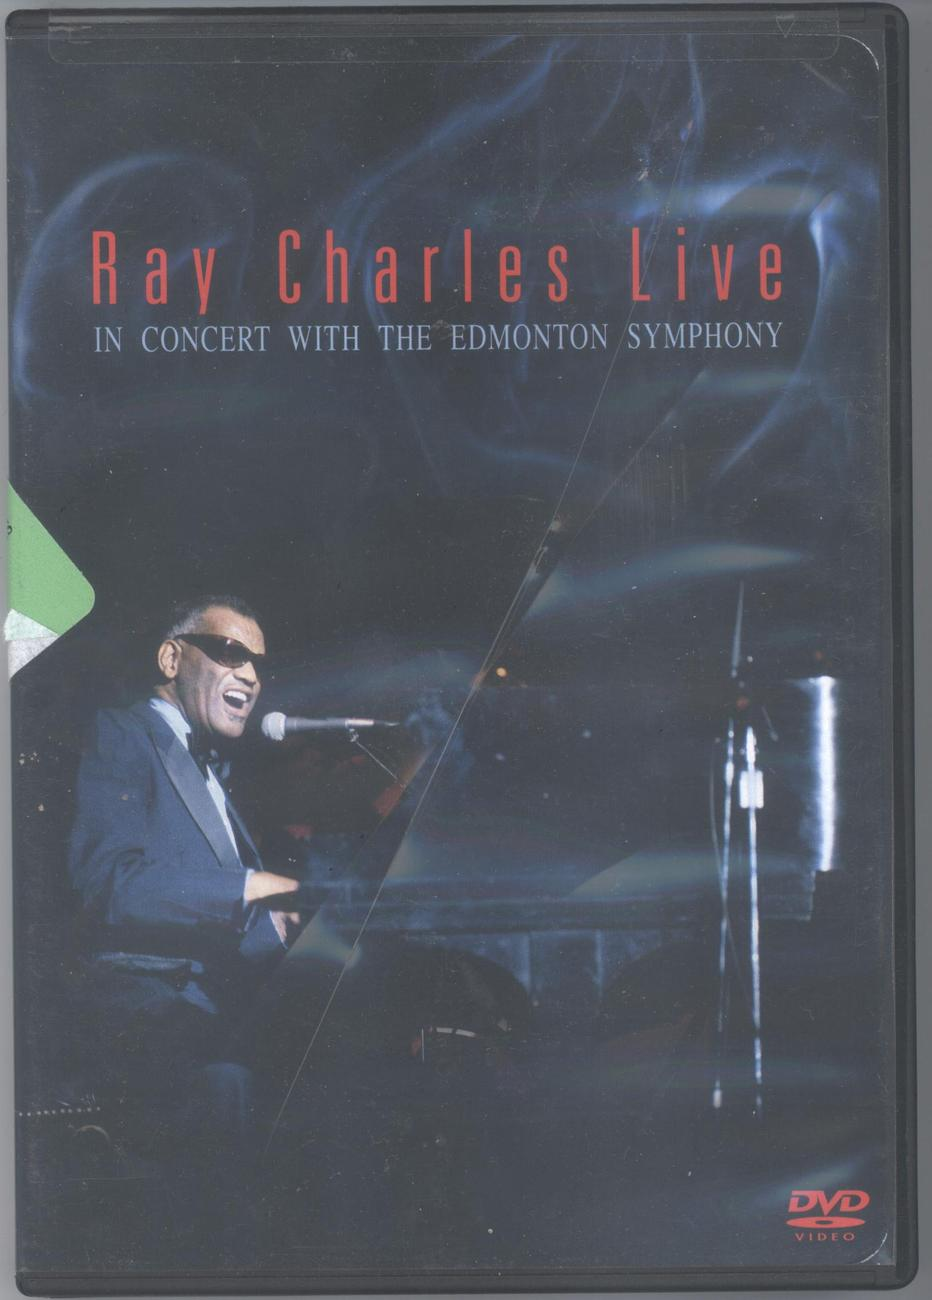 Ray charles live dvd